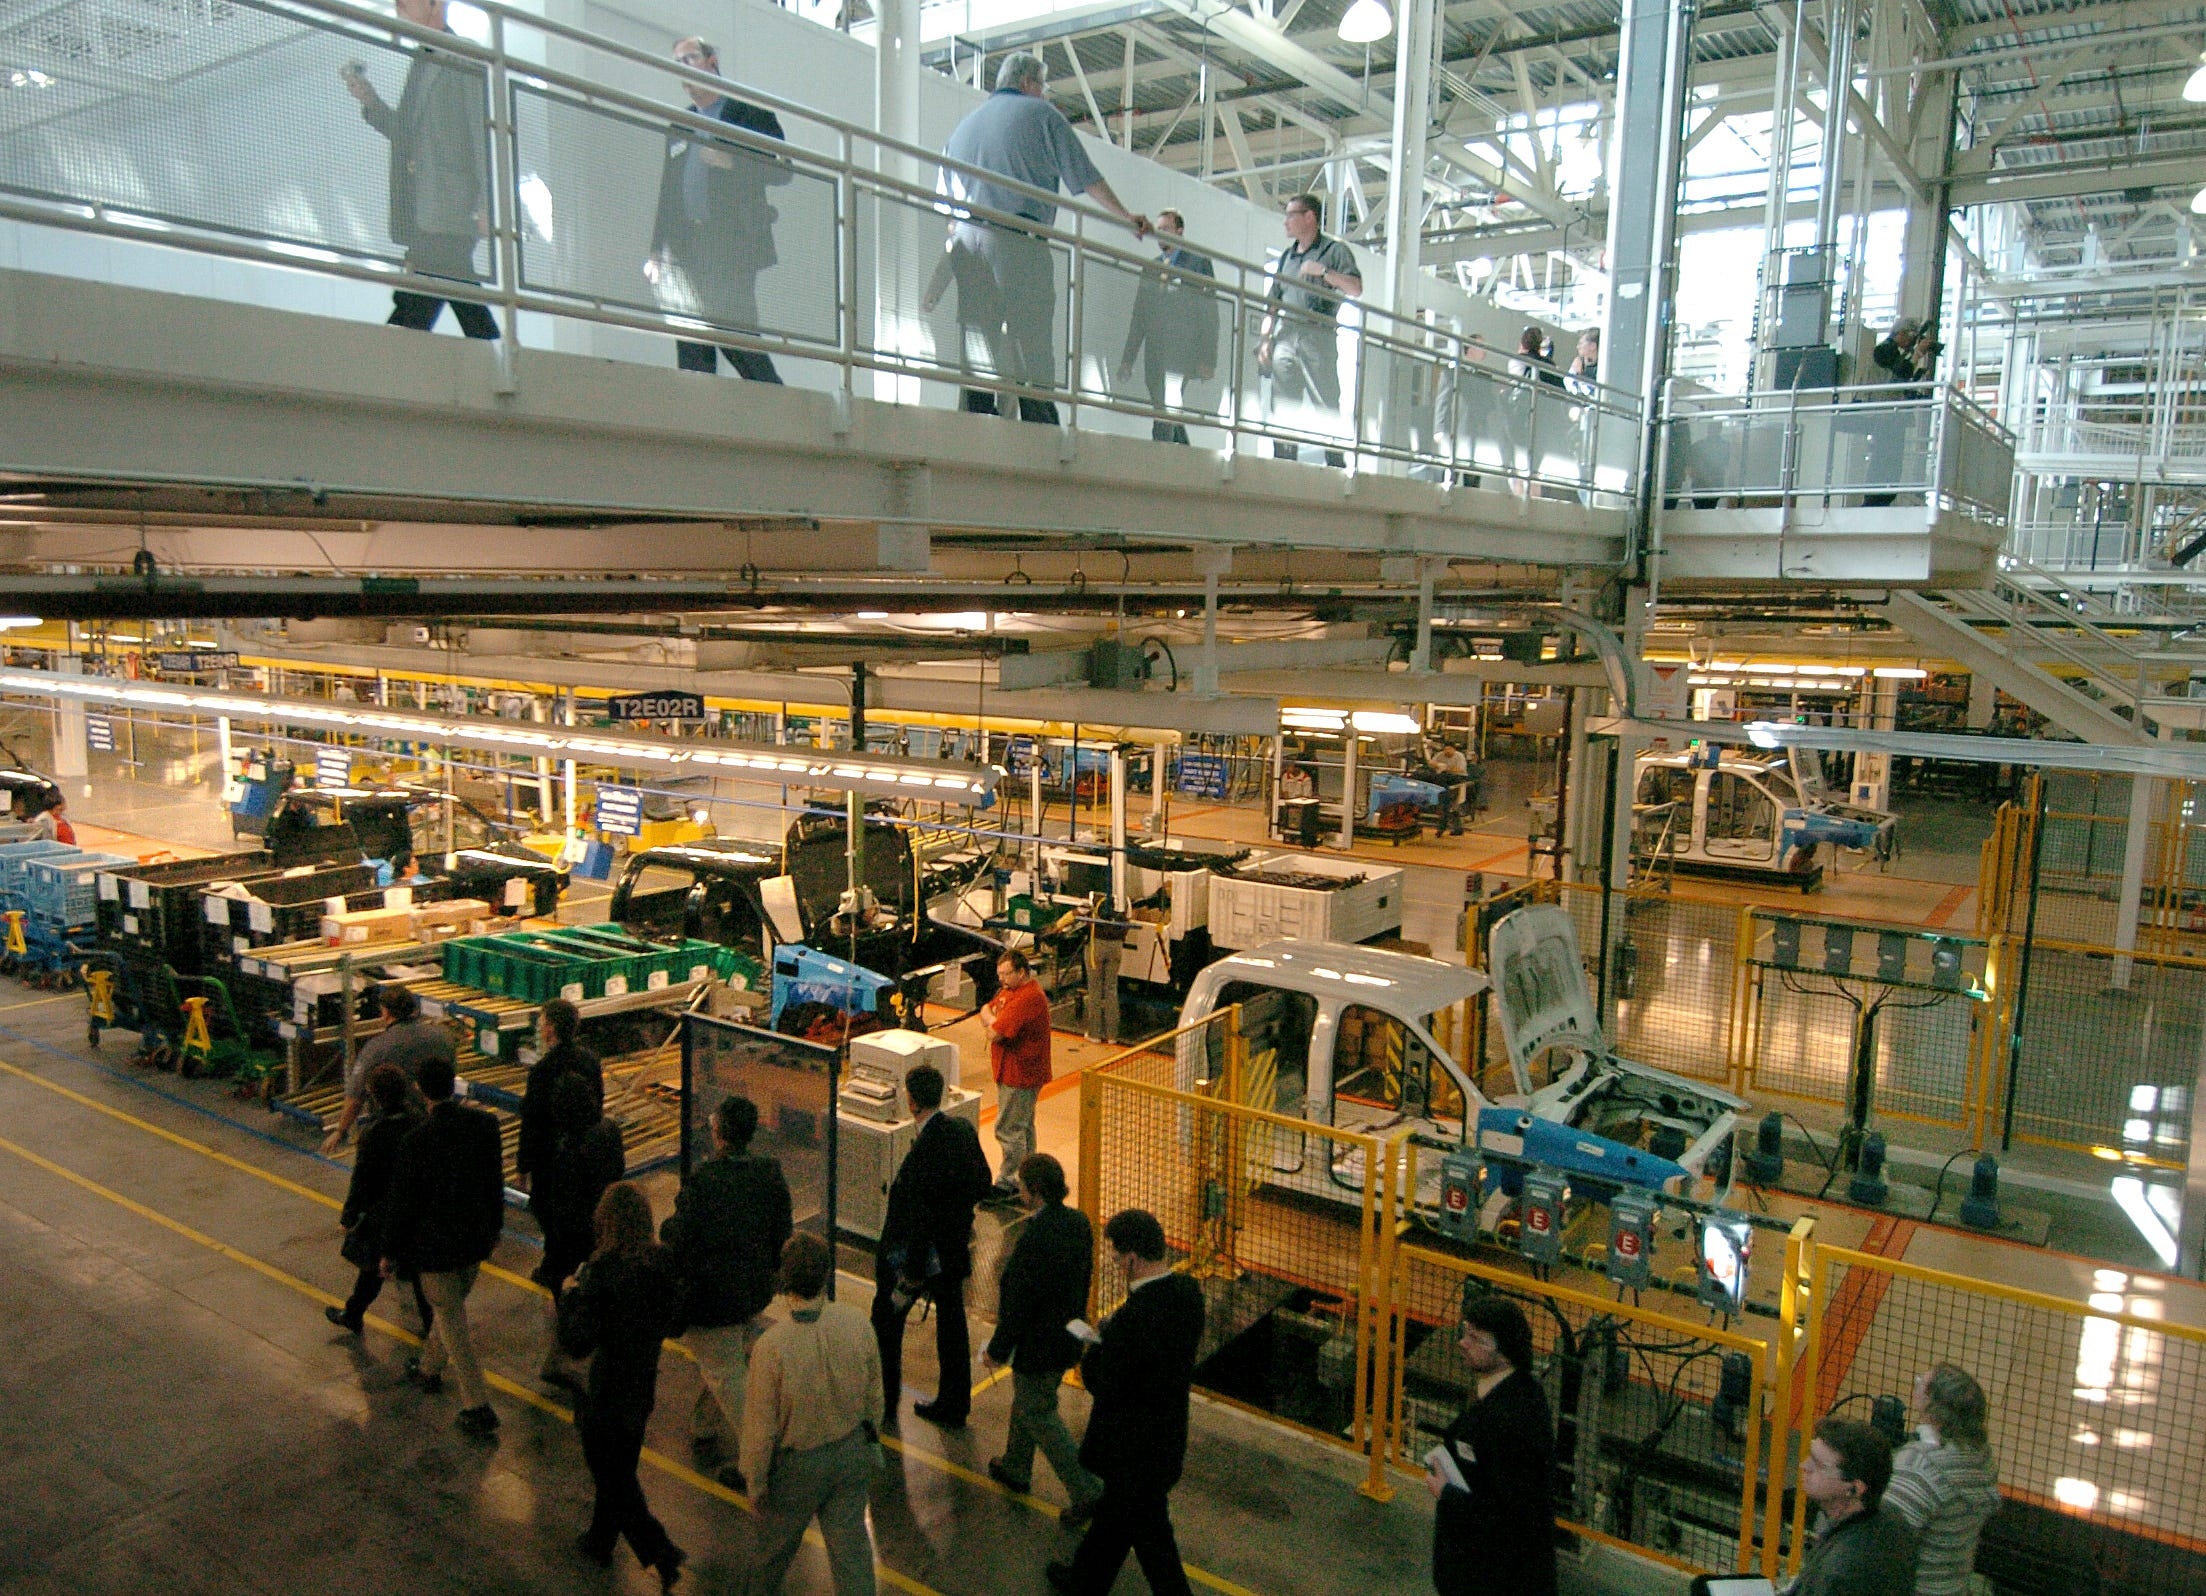 http://www.detroitnews.com/picture-gallery/business/autos/ford/2014 ...